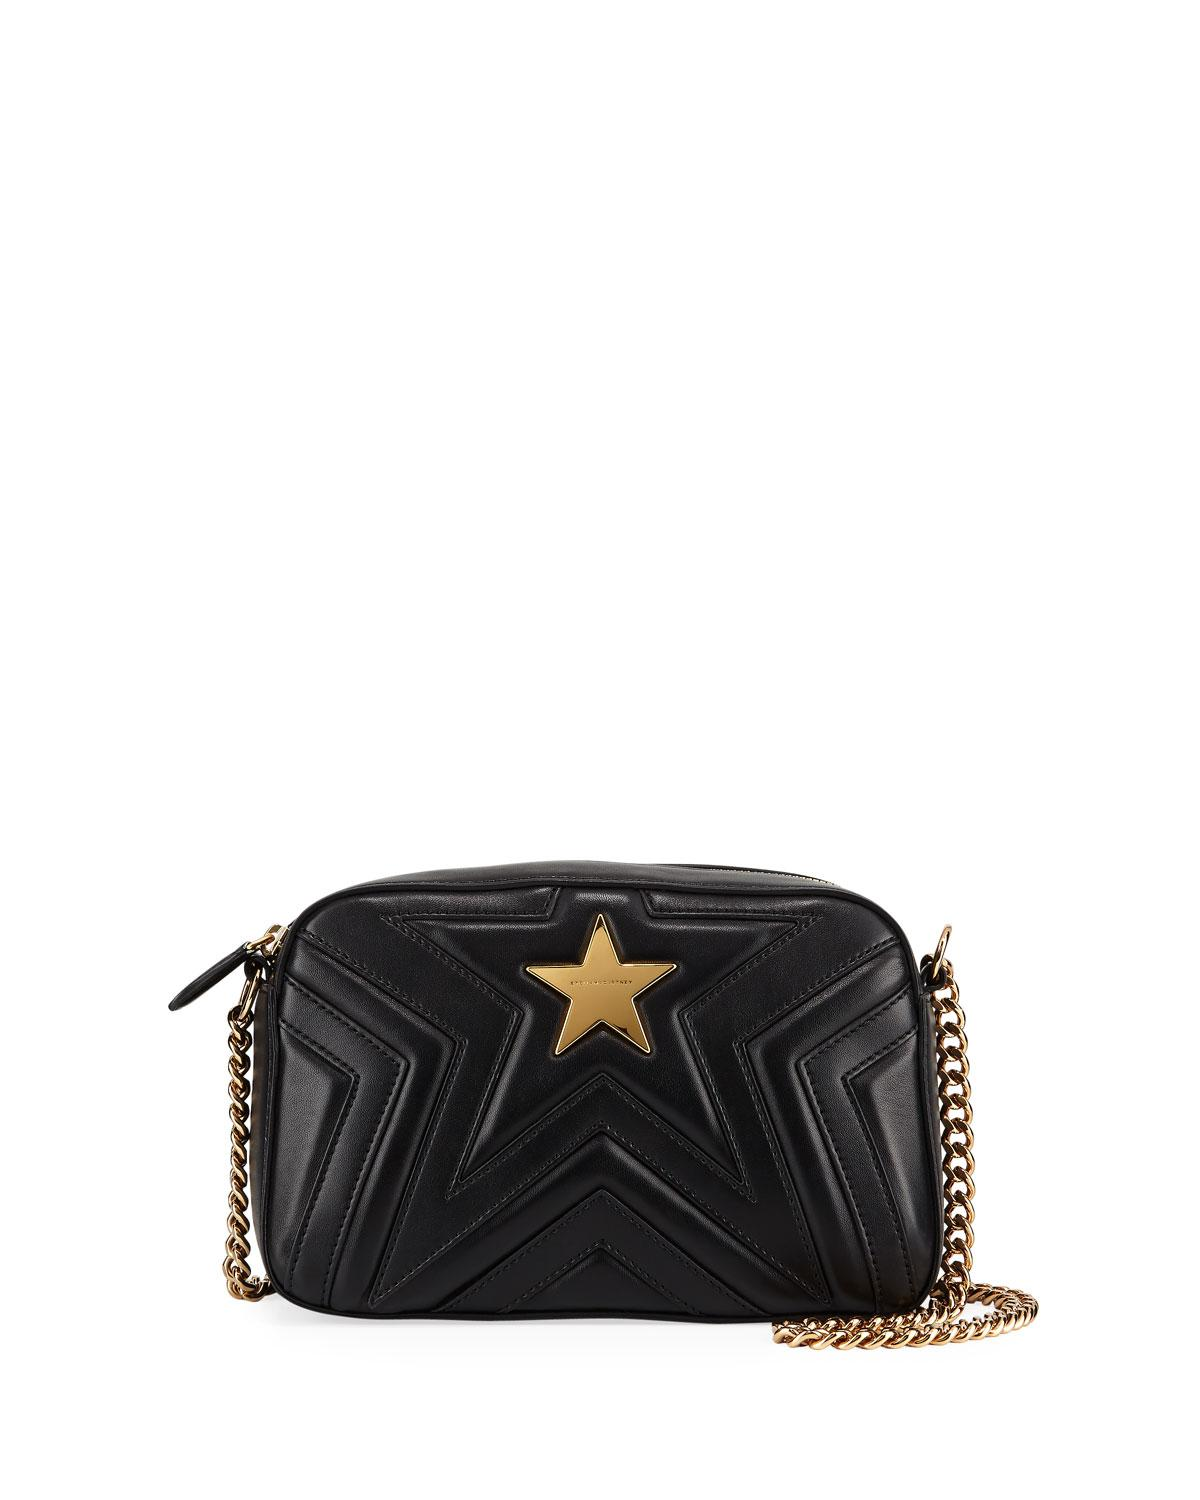 0a3e2d3f5b Lyst - Stella Mccartney Small Alter-napa Shoulder Bag in Black